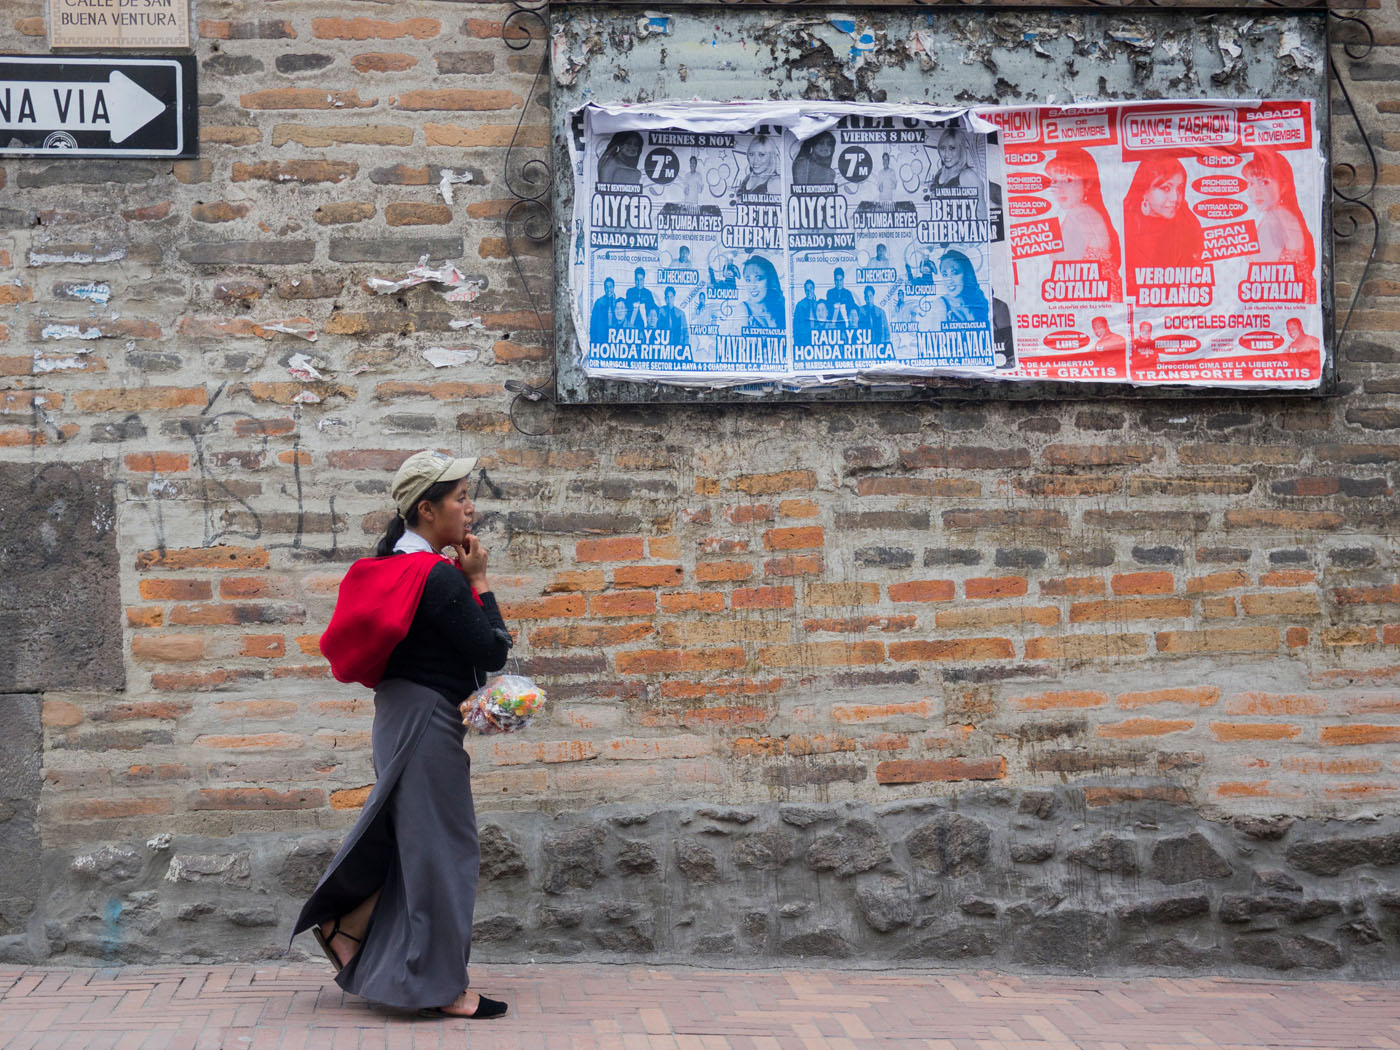 quito-ecuador-travel-streetlife-reisefotos_047